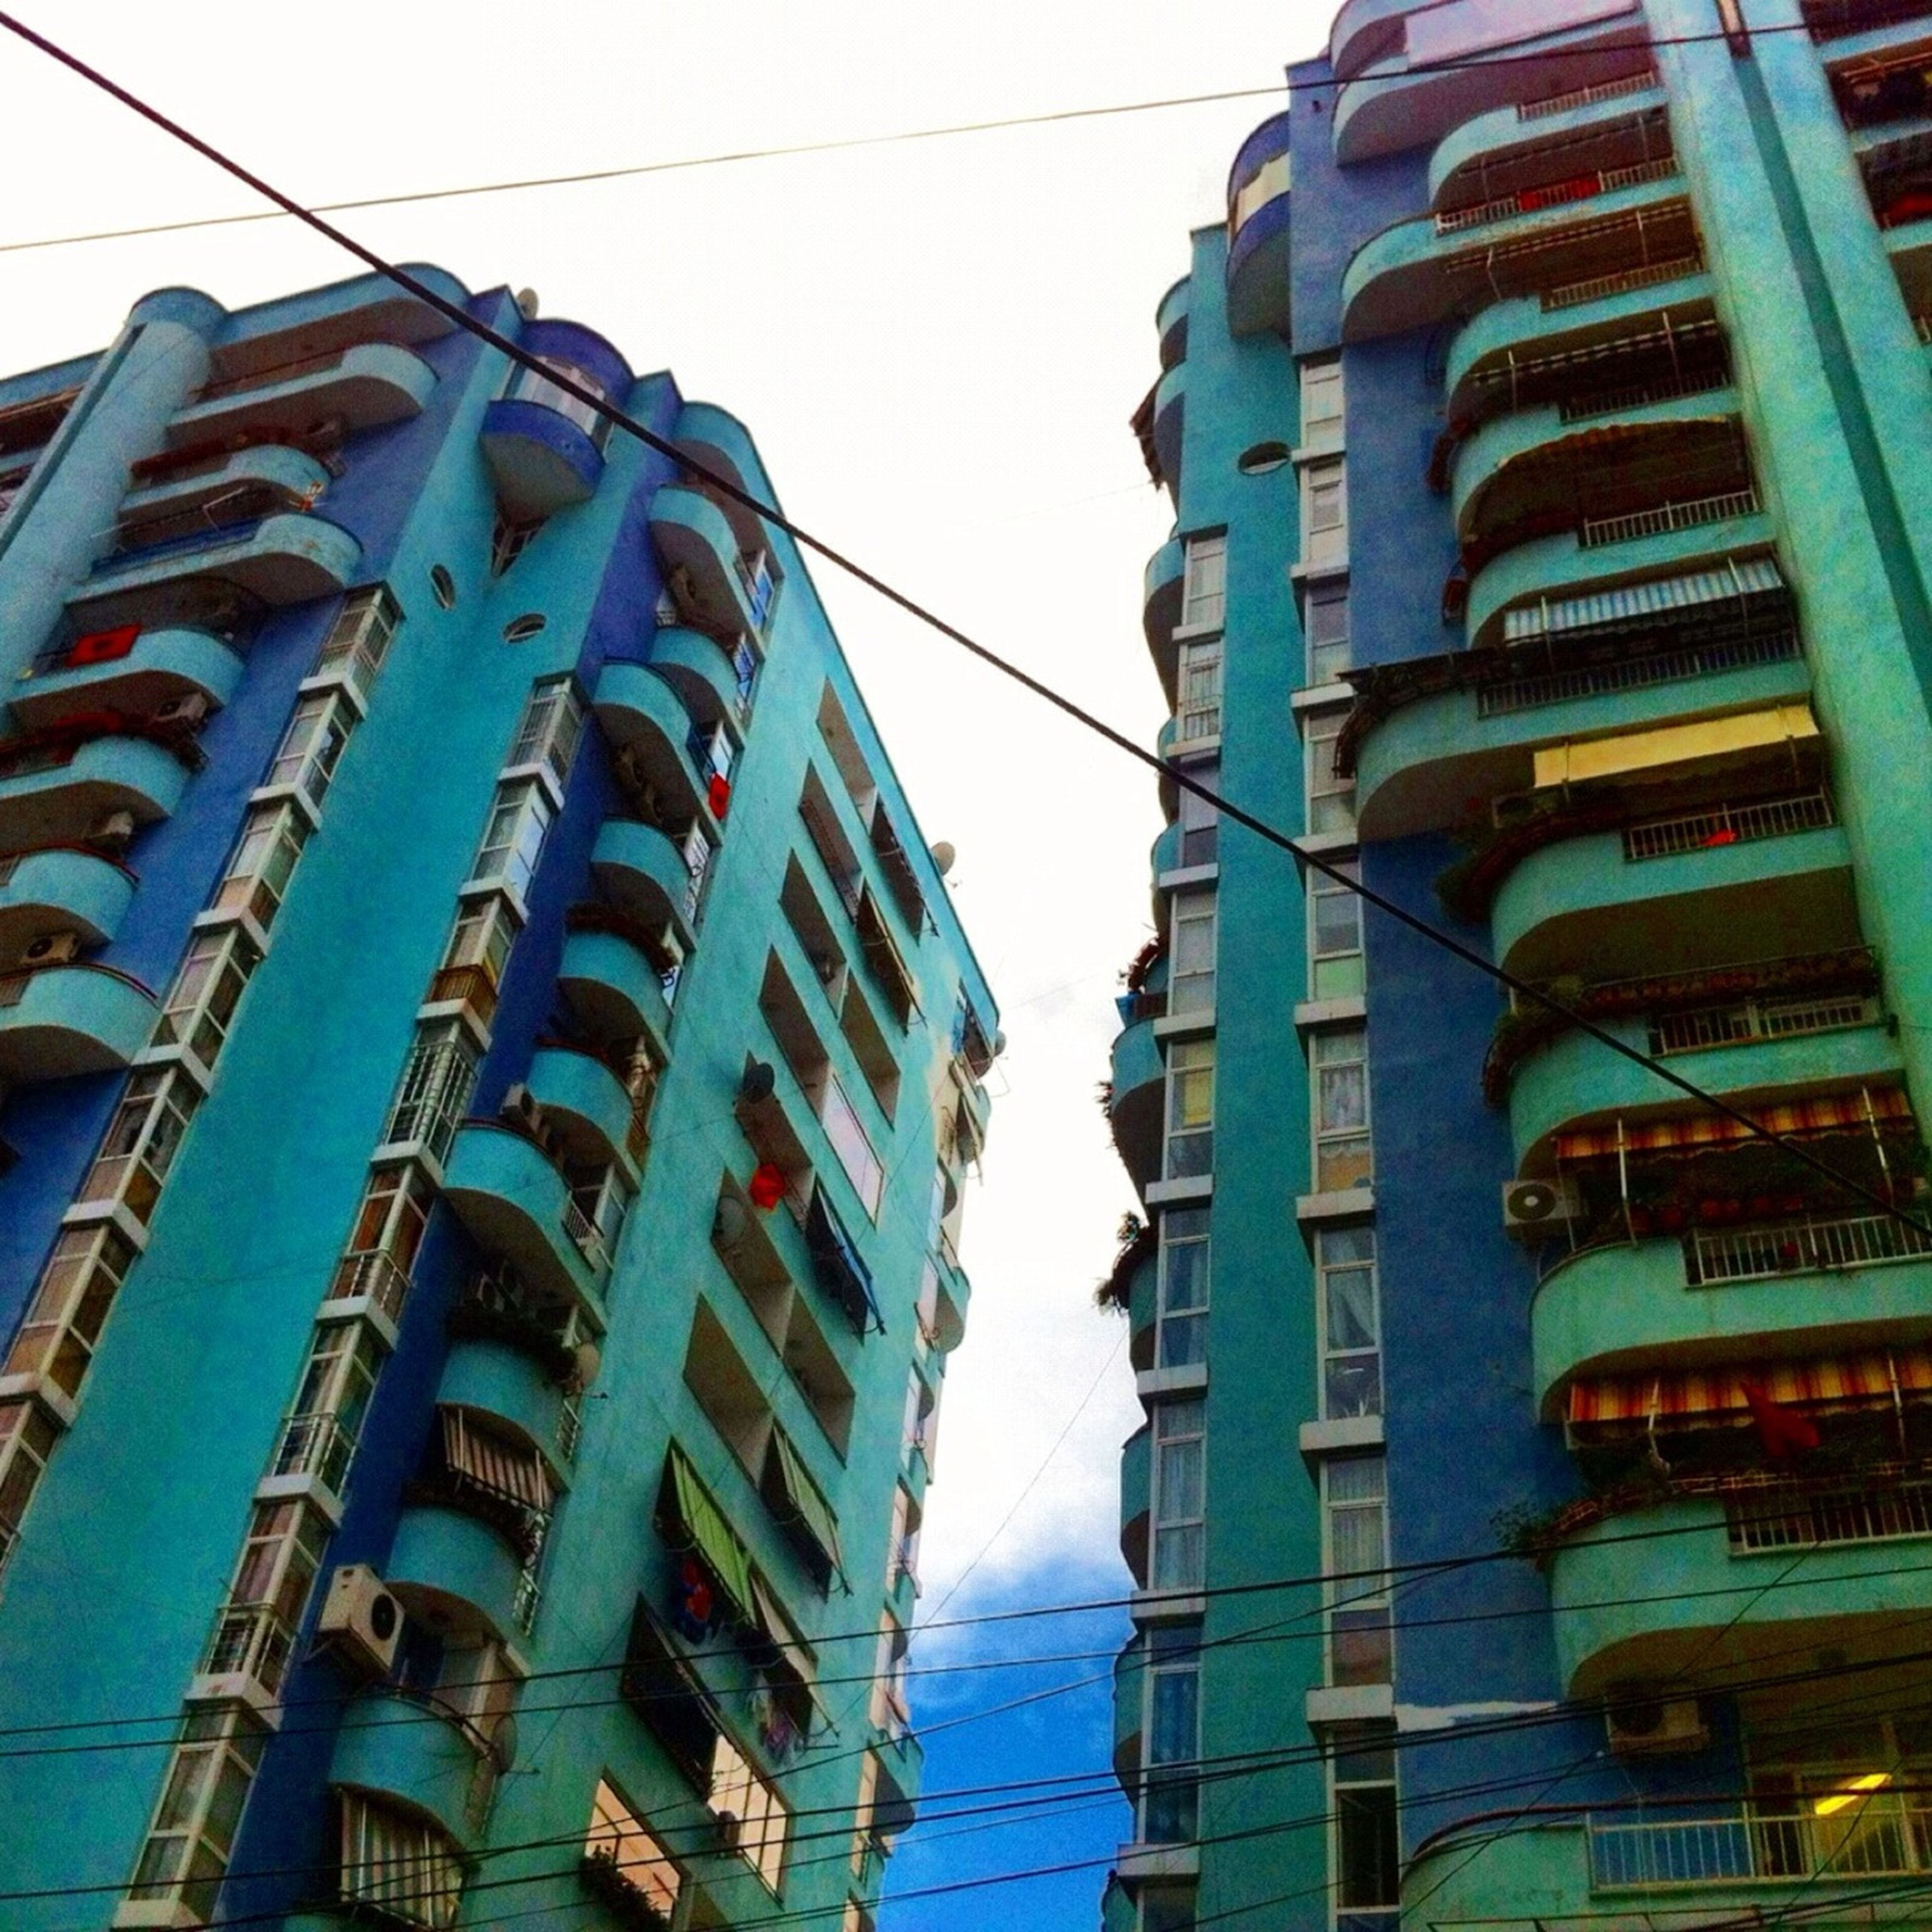 architecture, building exterior, built structure, low angle view, sky, building, city, residential building, day, window, in a row, outdoors, residential structure, no people, reflection, clear sky, city life, blue, modern, cable